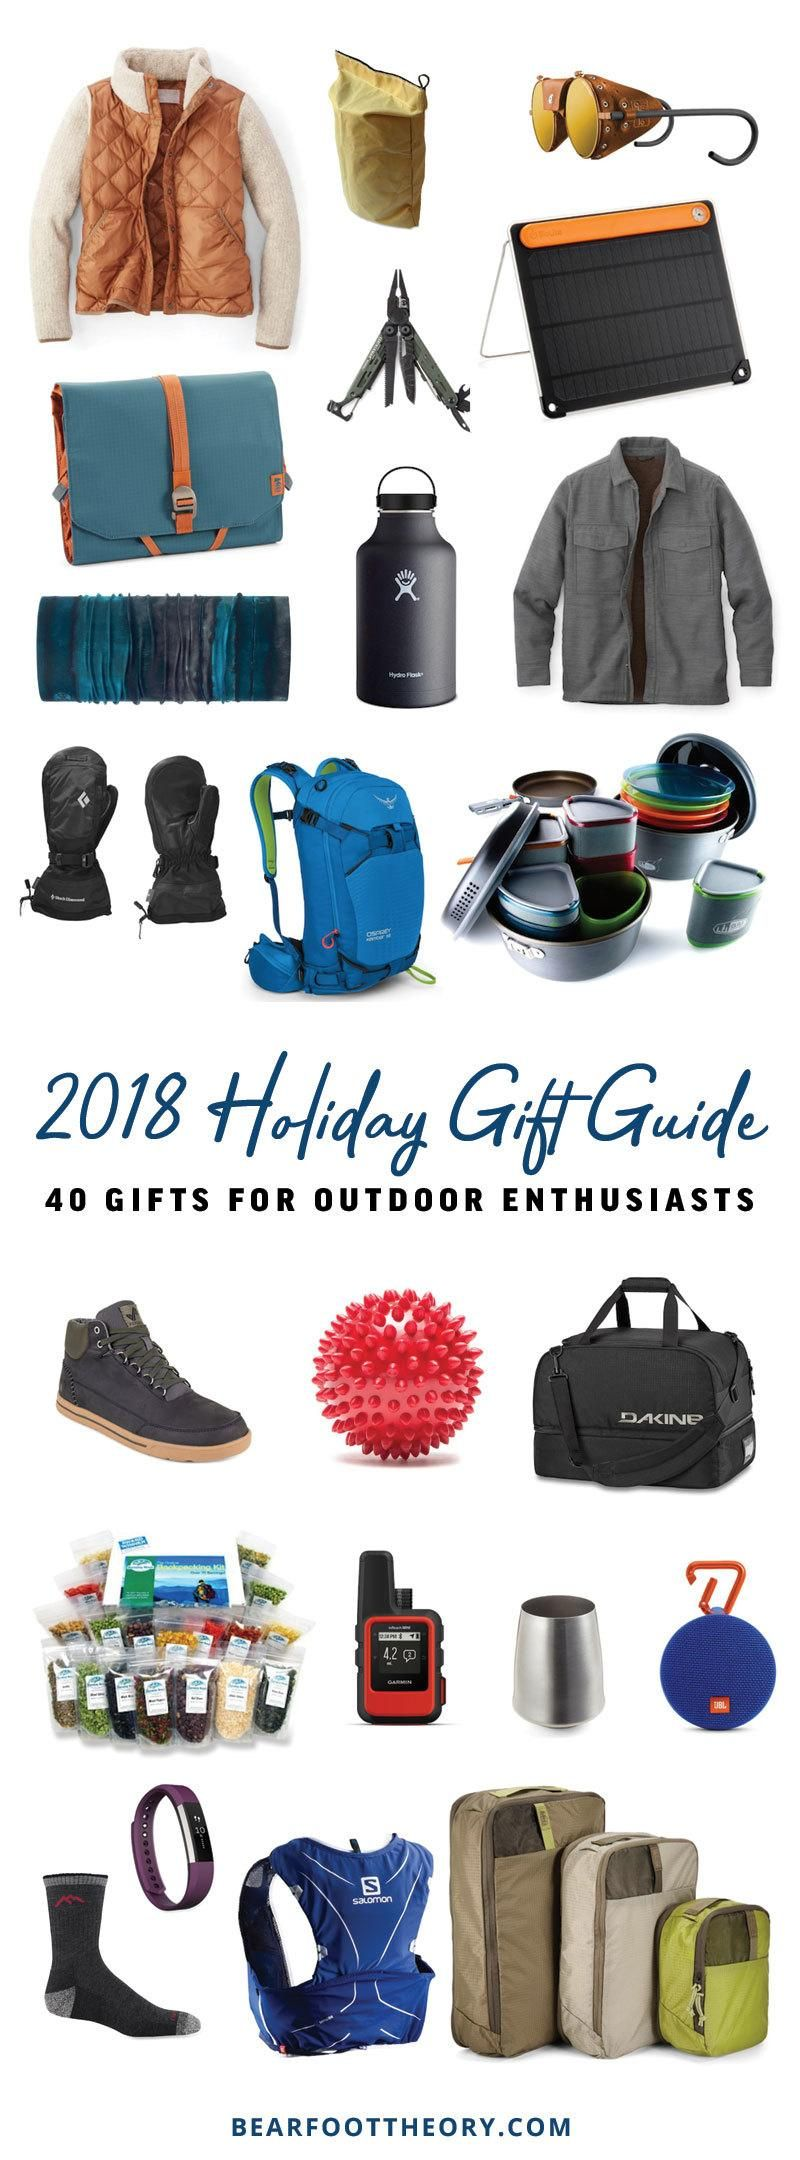 50 Best Gifts For Outdoor Lovers 2020 Ideas For Hikers Campers Van Lifers More Outdoorsy Gifts Diy Gifts For Him Romantic Gifts For Him